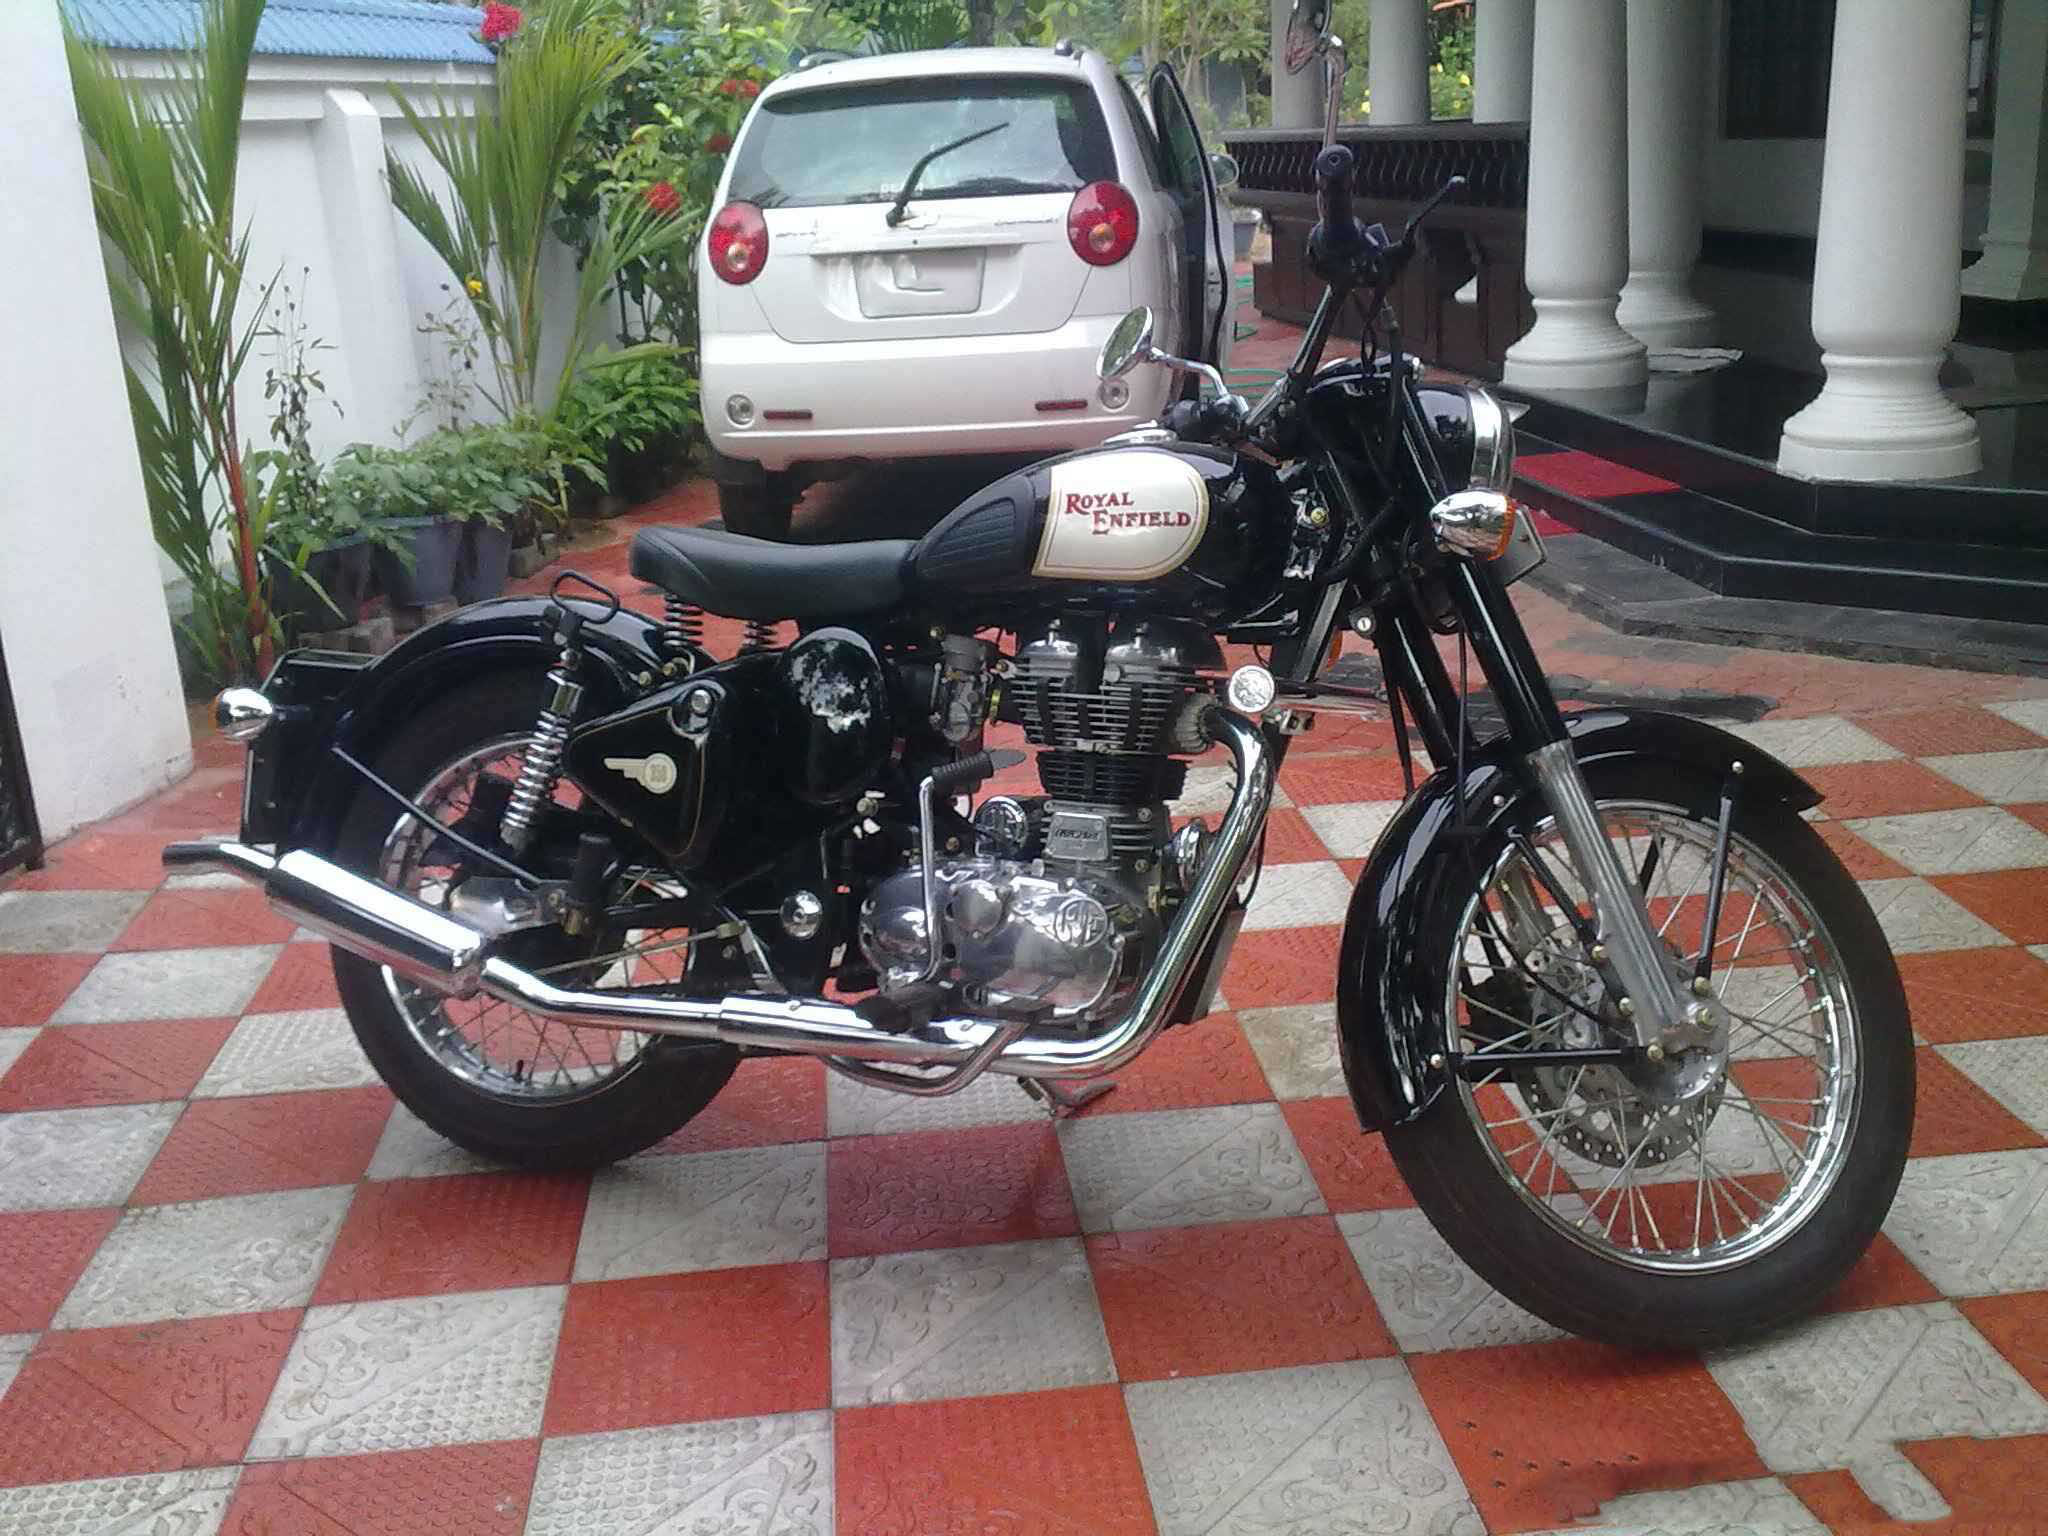 91 Royal Enfield Classic 350 Wallpapers On Wallpapersafari